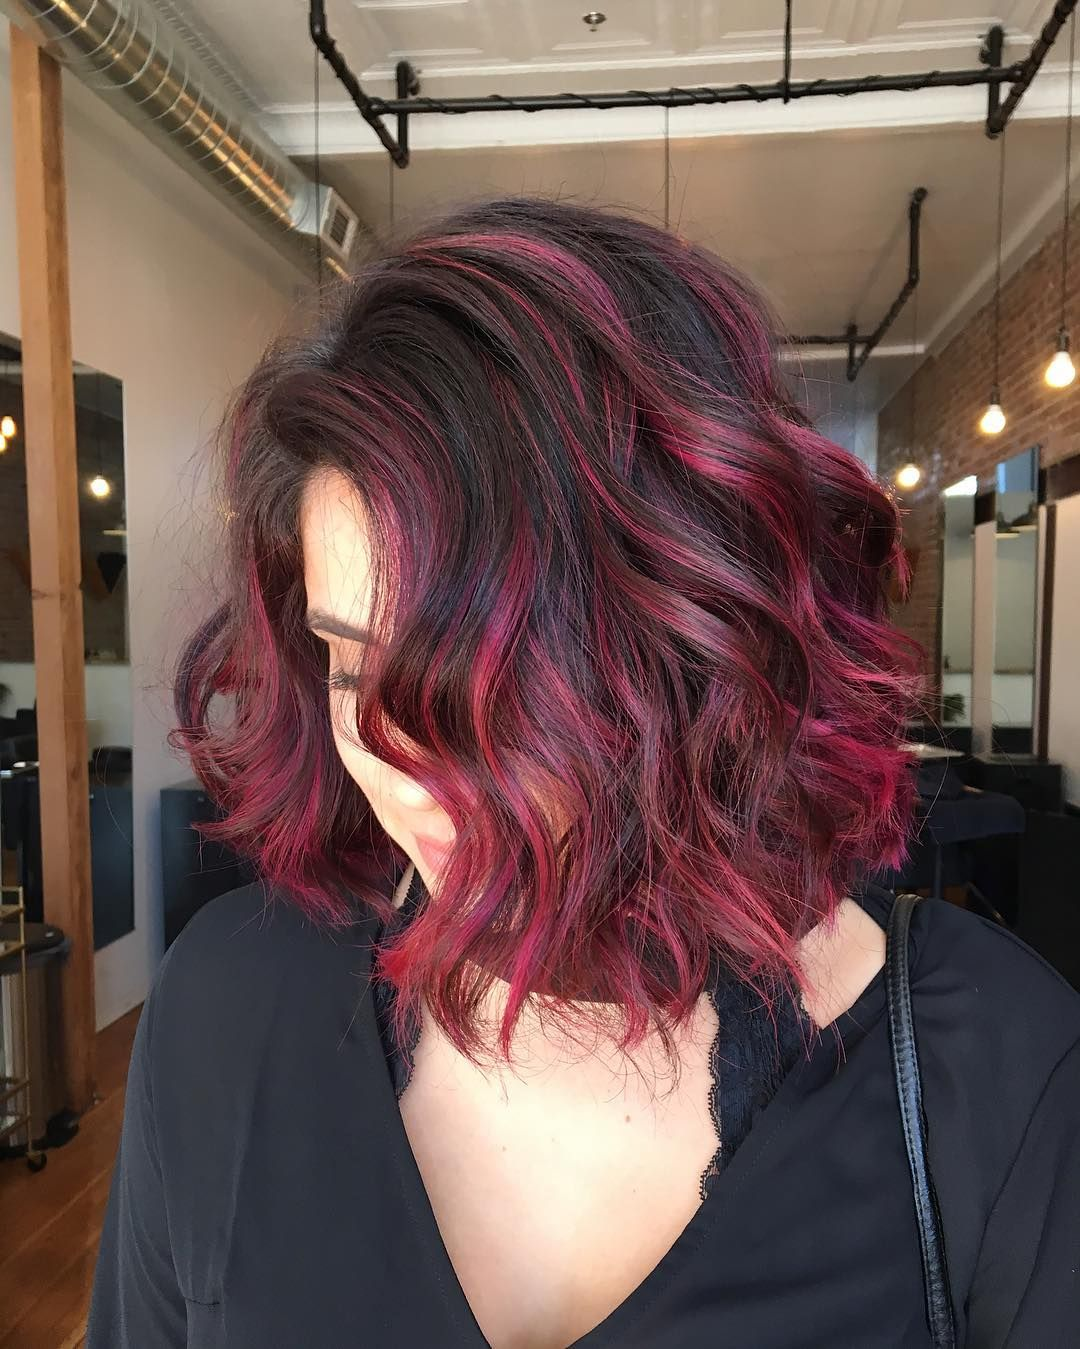 30 Blushing Burgundy Ombre Hair Ideas Ravishing In Red Check More At Http Hairstylezz Com Best Burgundy Ombr Hair Styles Hair Color Burgundy Red Ombre Hair